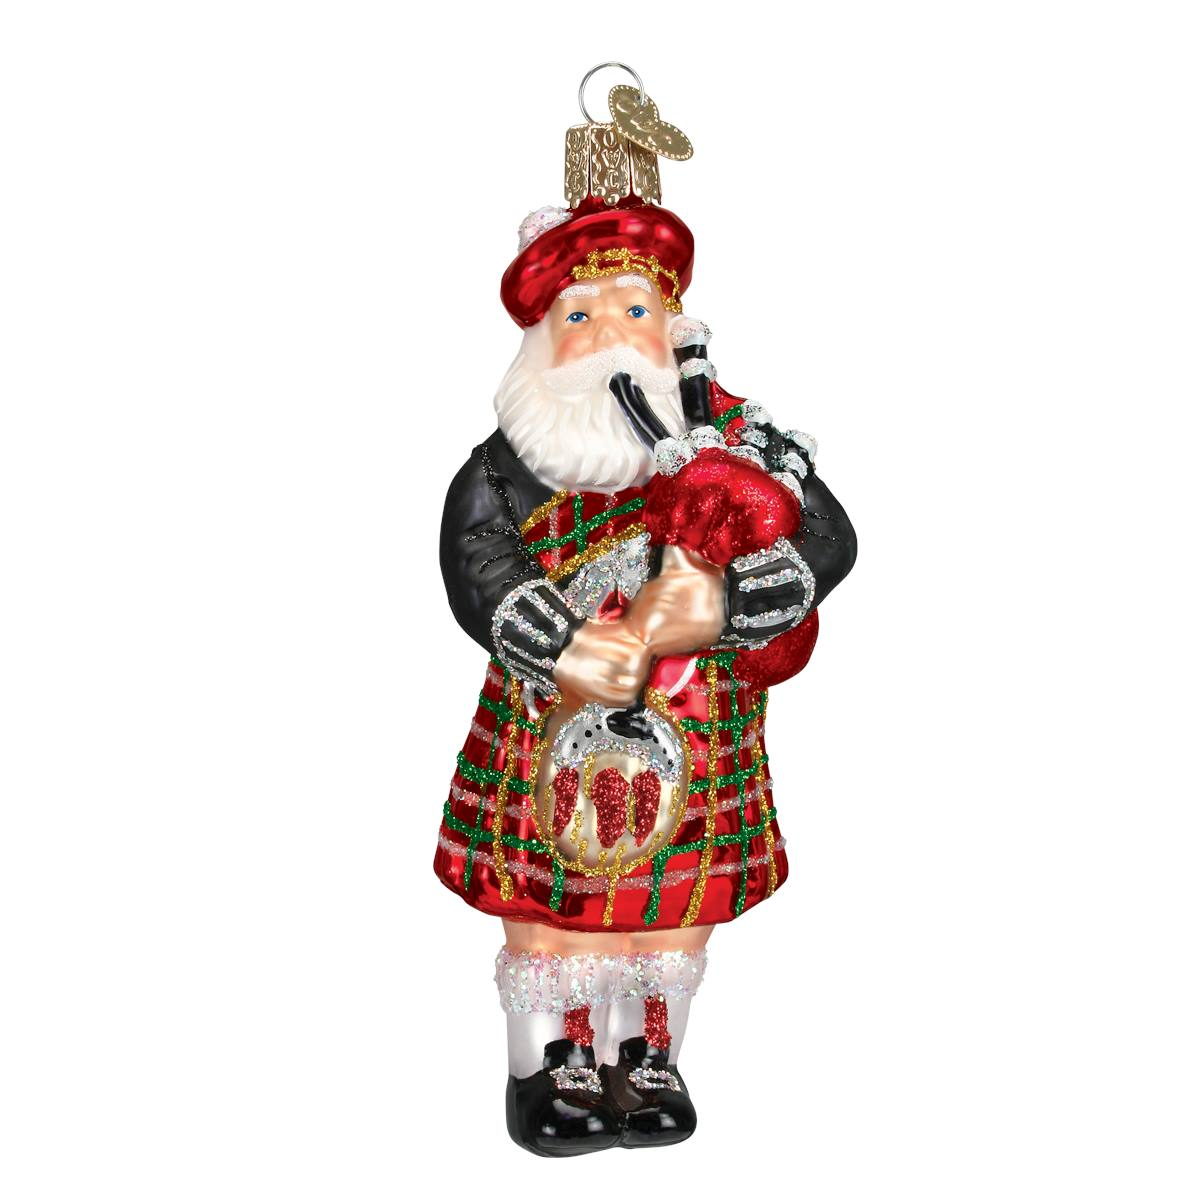 Highland Santa Ornament - Traditions